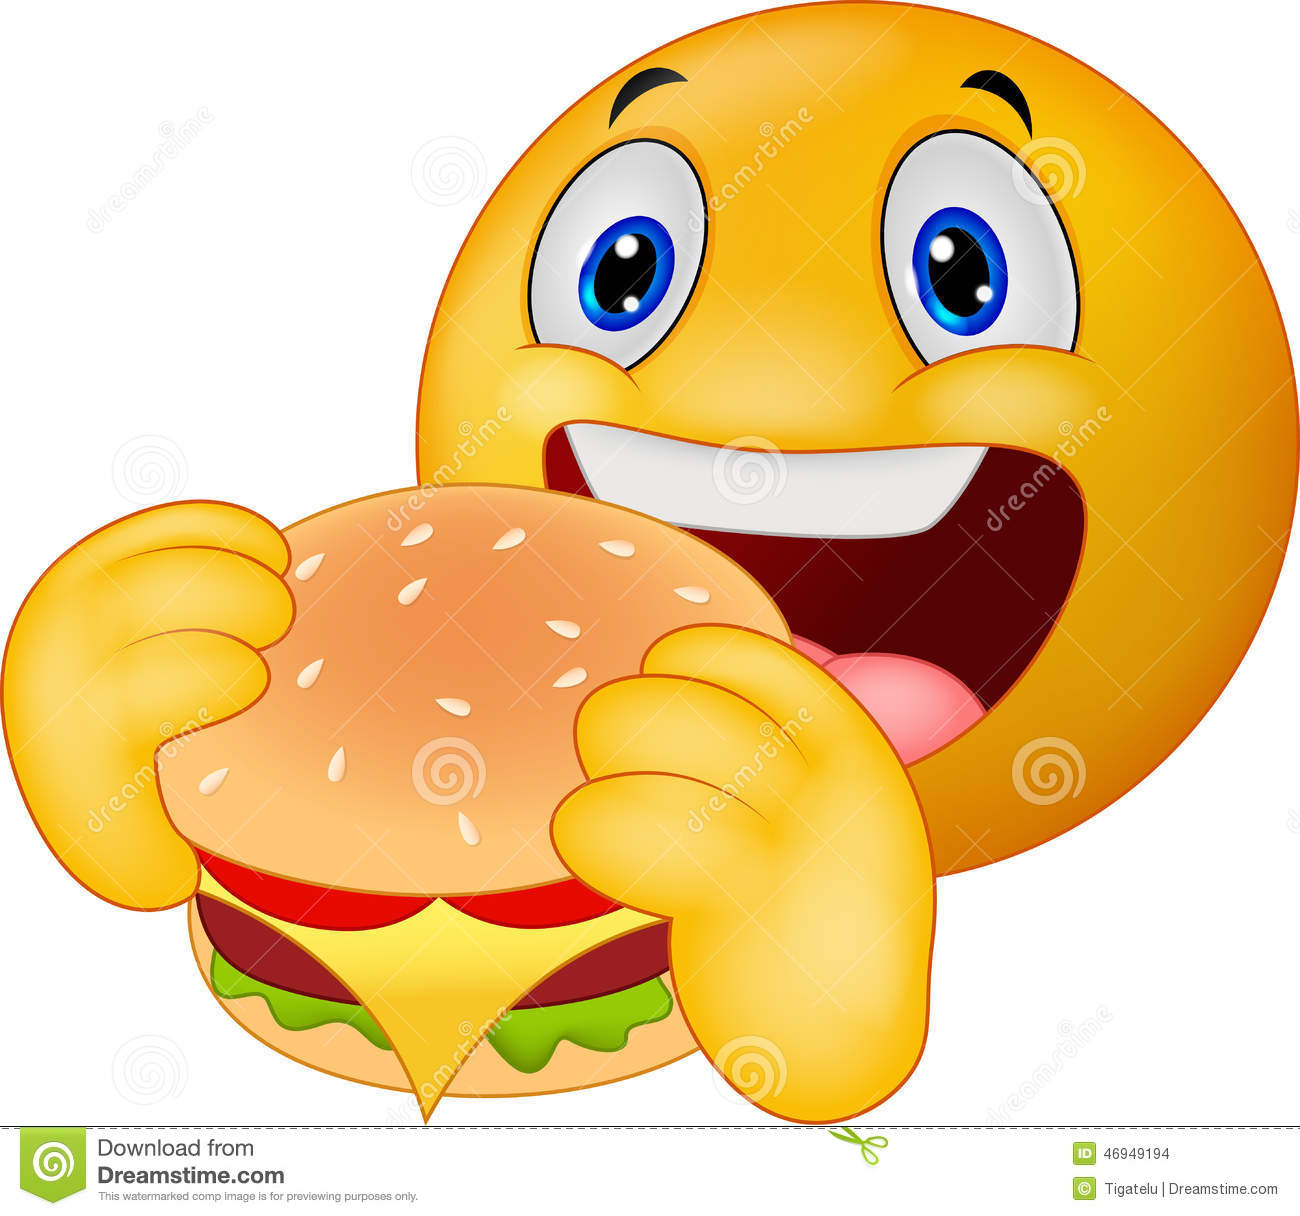 Emoticon Smiley Eating Hamburger Stock Vector - Image: 46949194